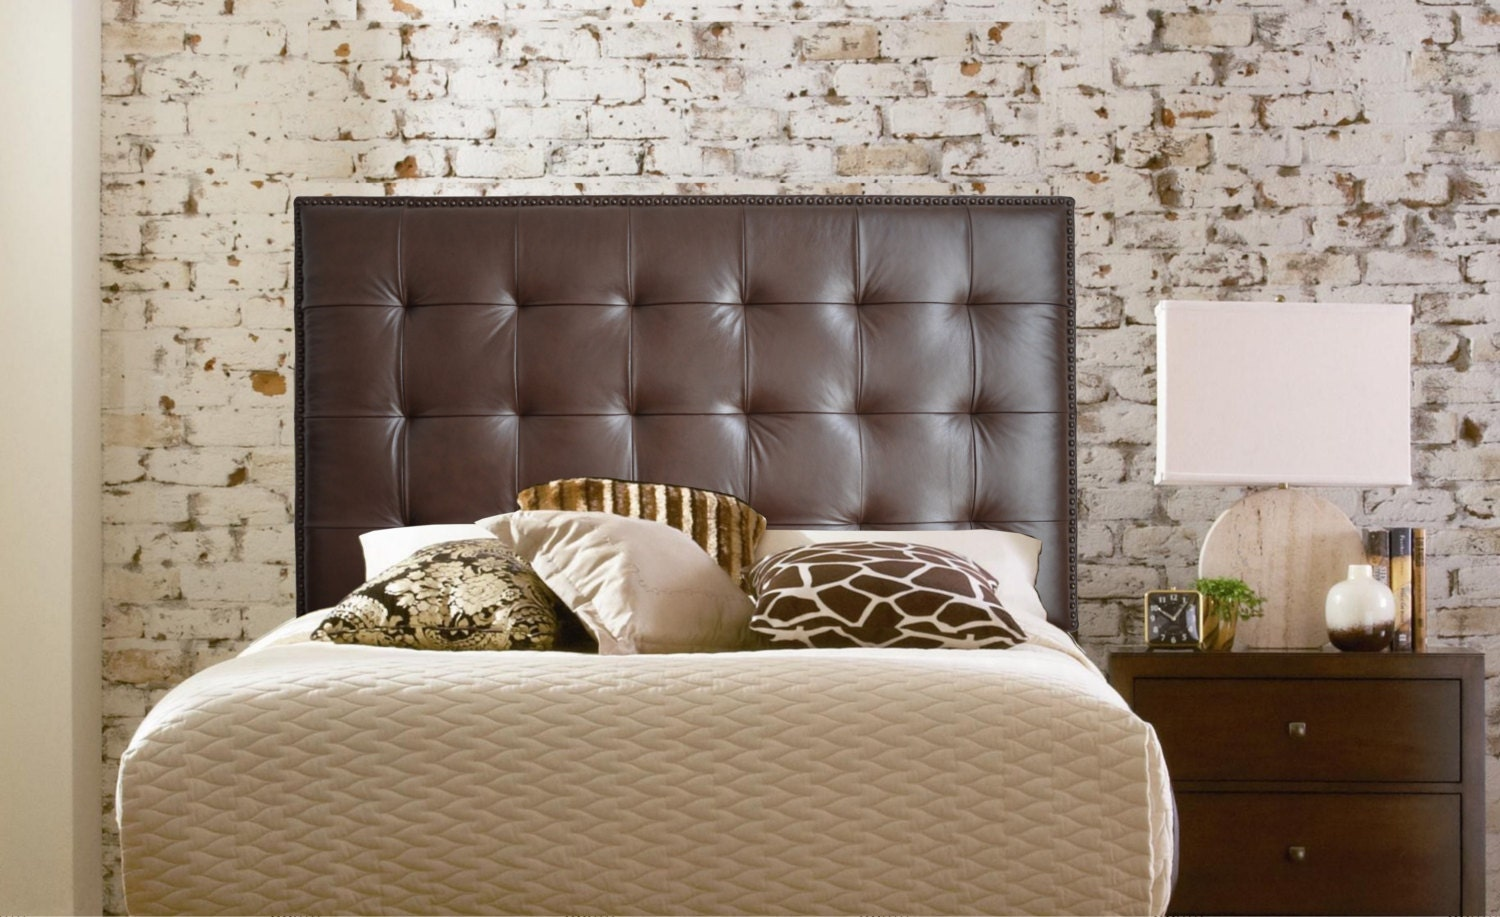 tufted set king upholstered fab ingenuity kids headboards bedroom mirrored black tall top headboard